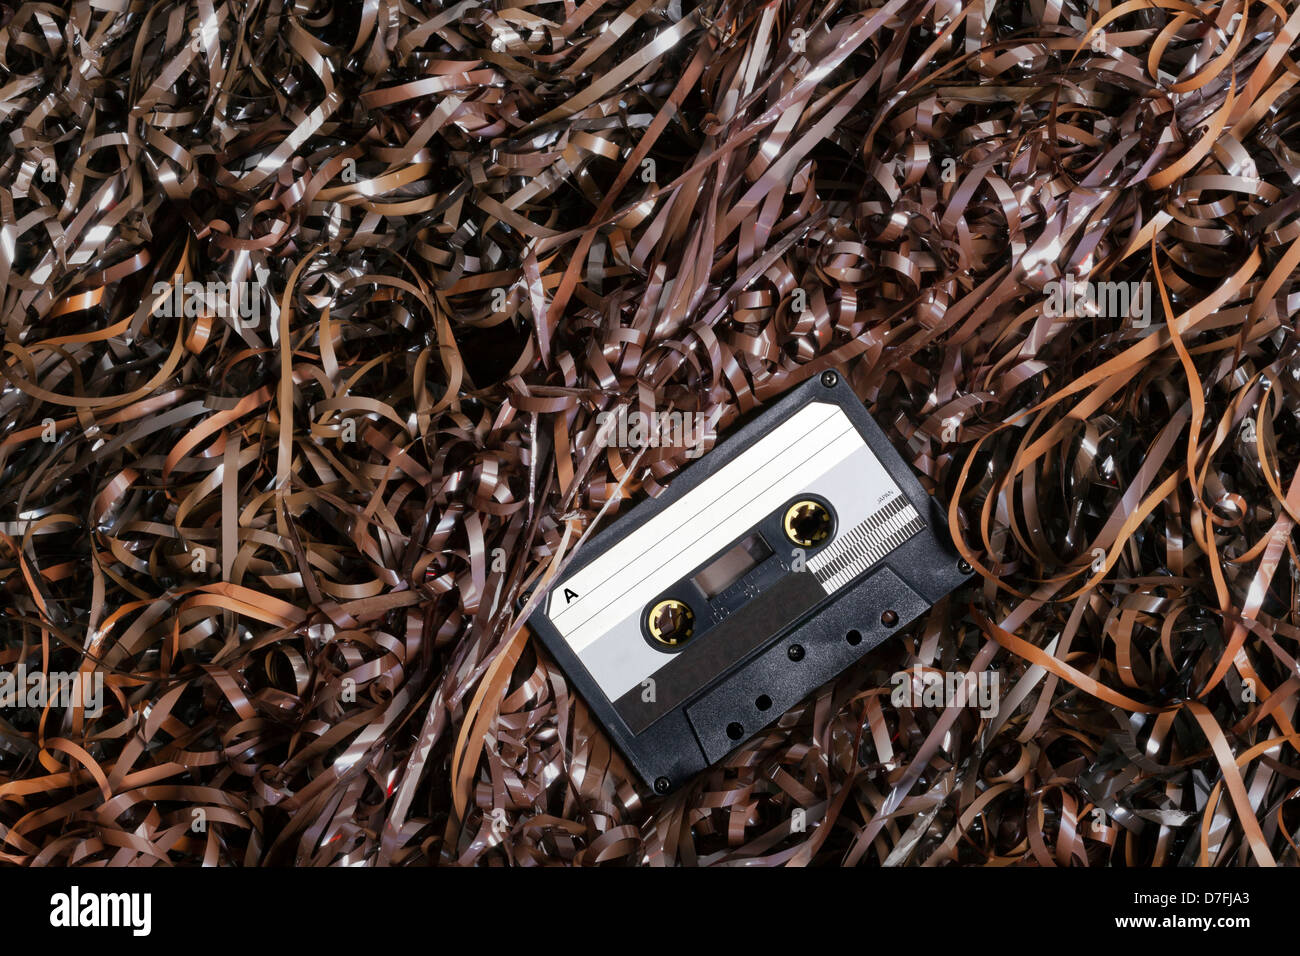 Black recordable plastic audio cassette resting on a large amount of magnetic audio tape. - Stock Image